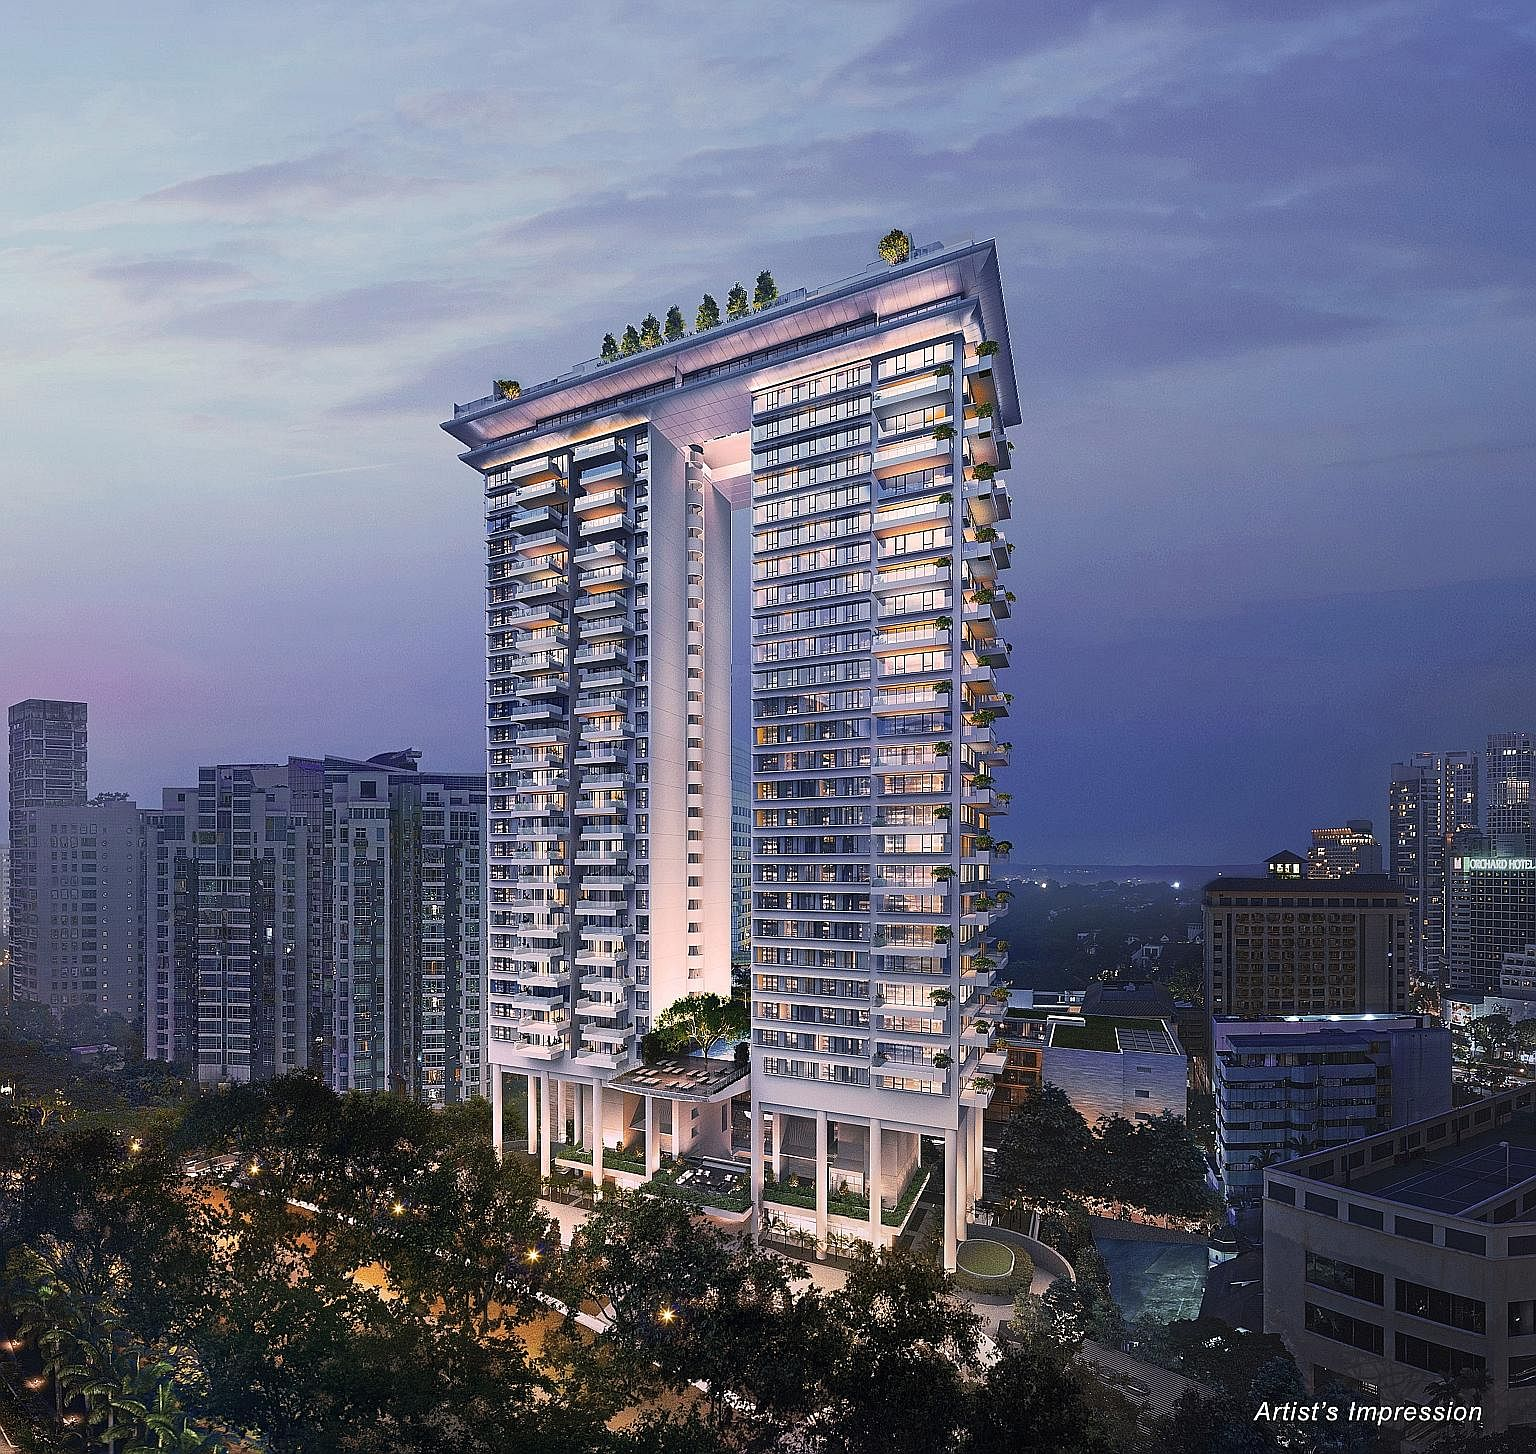 The buzz over high-end freehold Boulevard 88 in Orchard Boulevard helped boost the number of caveats lodged for luxury apartments in the prime district or Core Central Region by 19 per cent in the first half of the year.